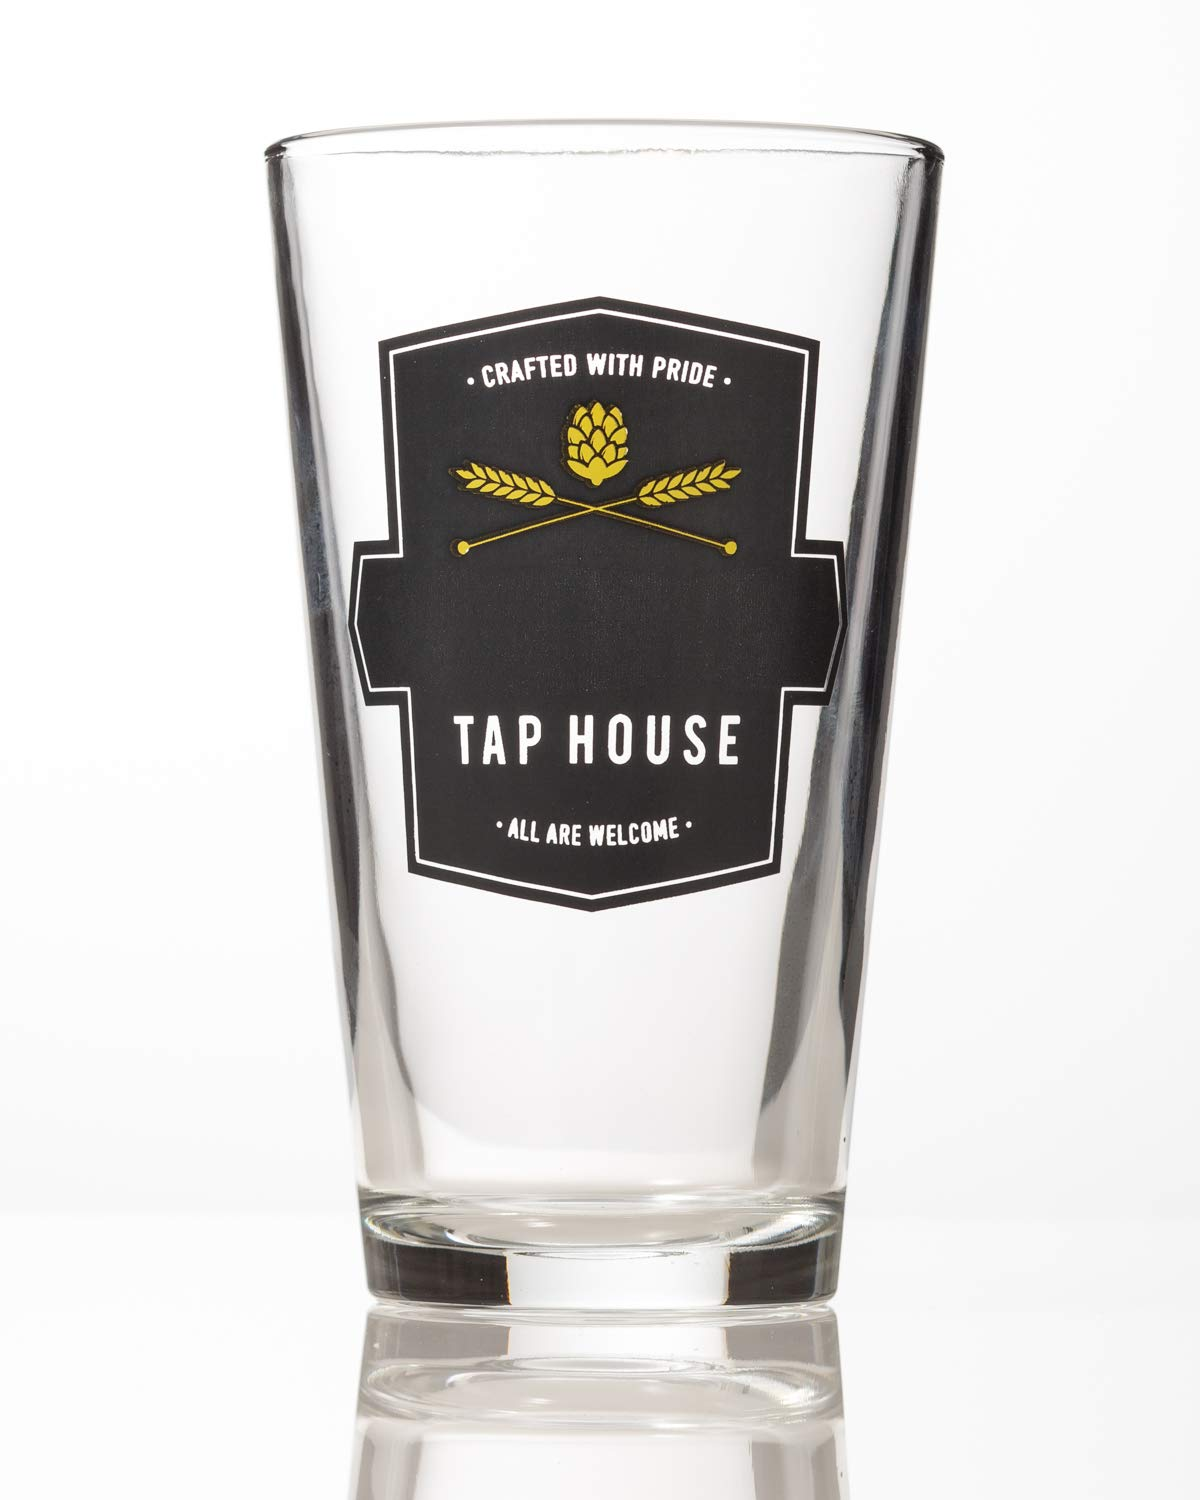 GiftTree Tap House Custom Beer Glasses | Set of 4 Pint Glasses made by Libbey Glass | Perfect Present for Housewarming, Wedding, Groomsmen, Father's Day, Birthday and Holidays by GiftTree (Image #6)